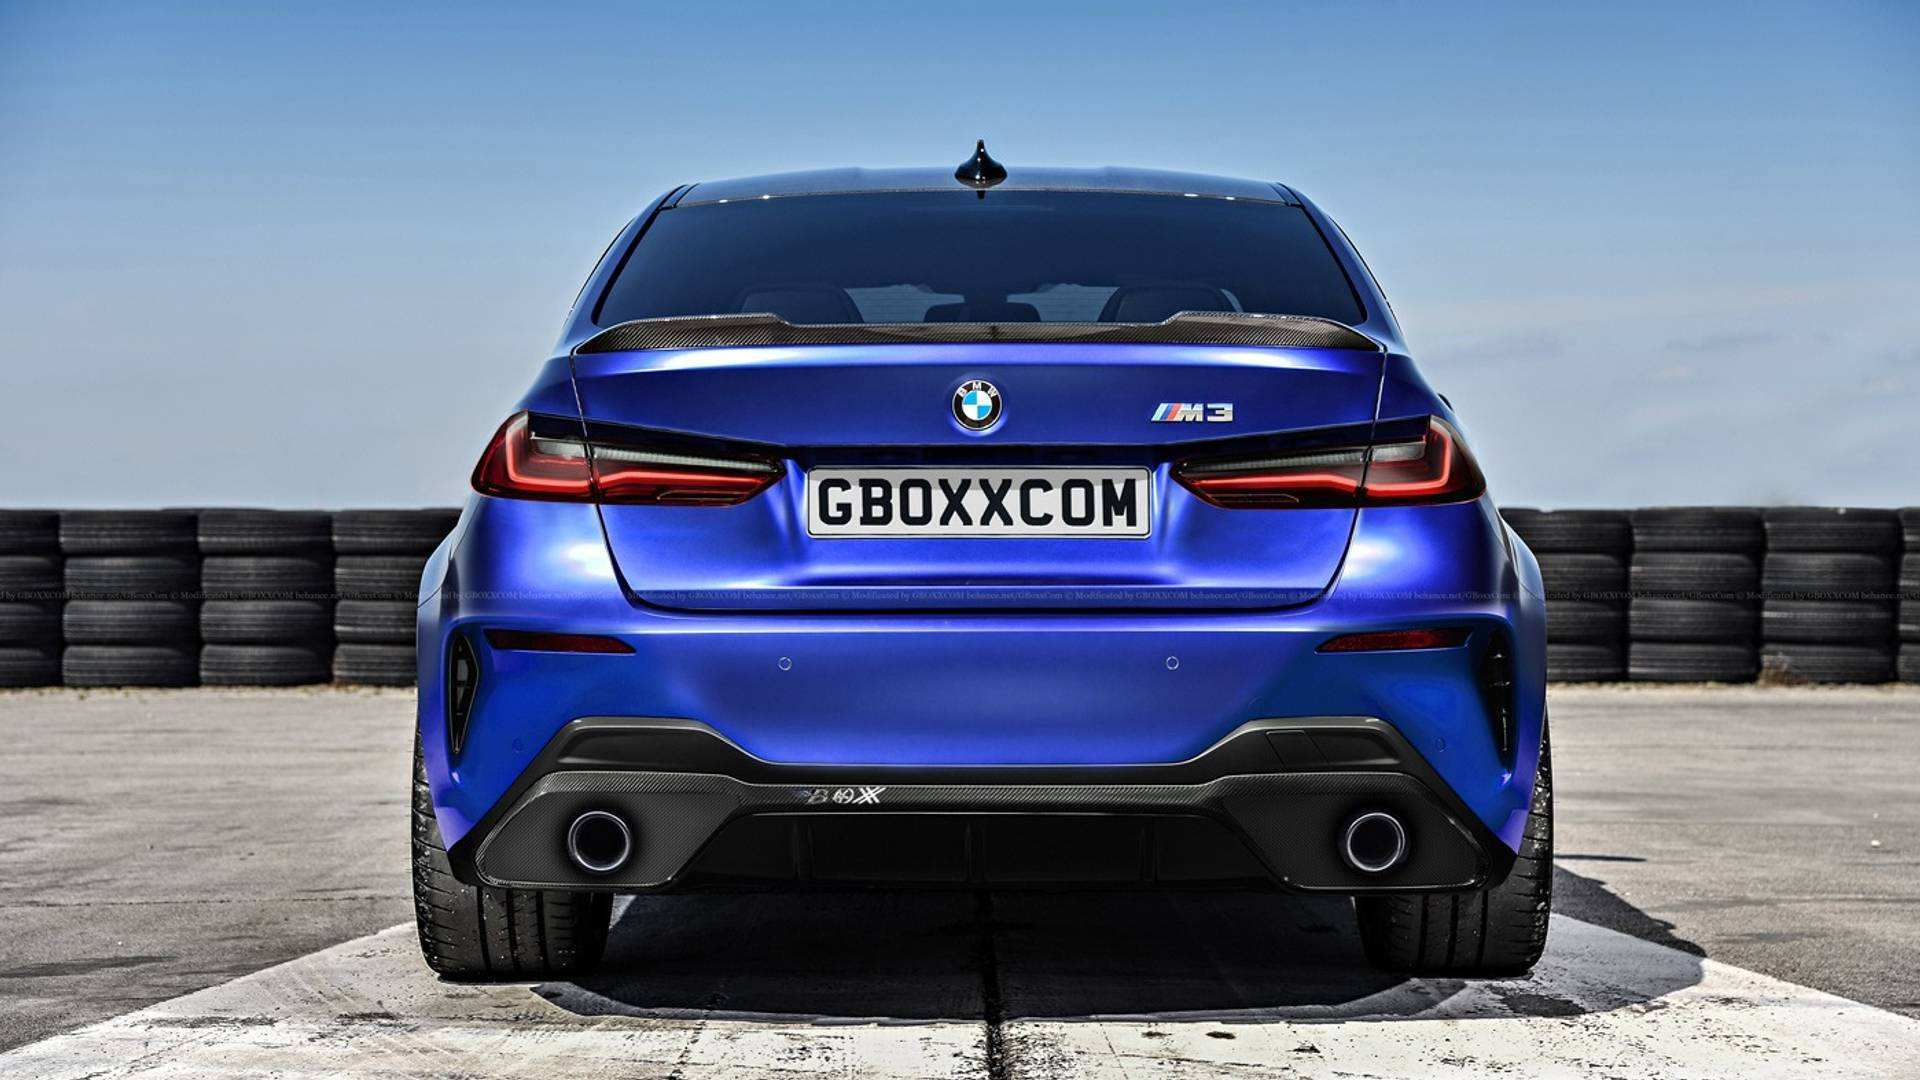 94 The Best 2020 BMW M4 Configurations